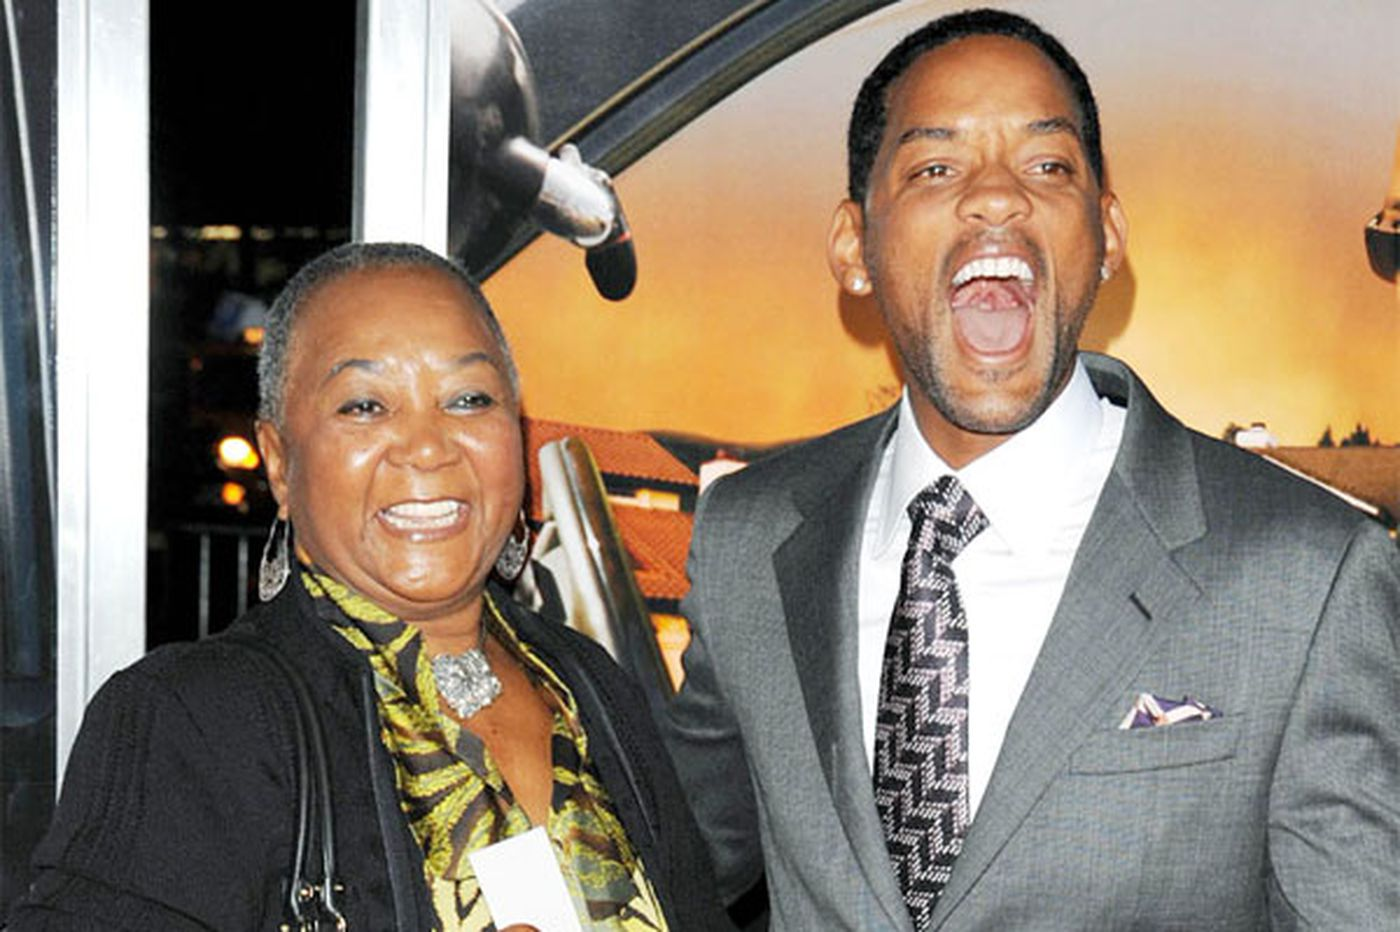 Hang with Will Smith's mom on Mother's Day